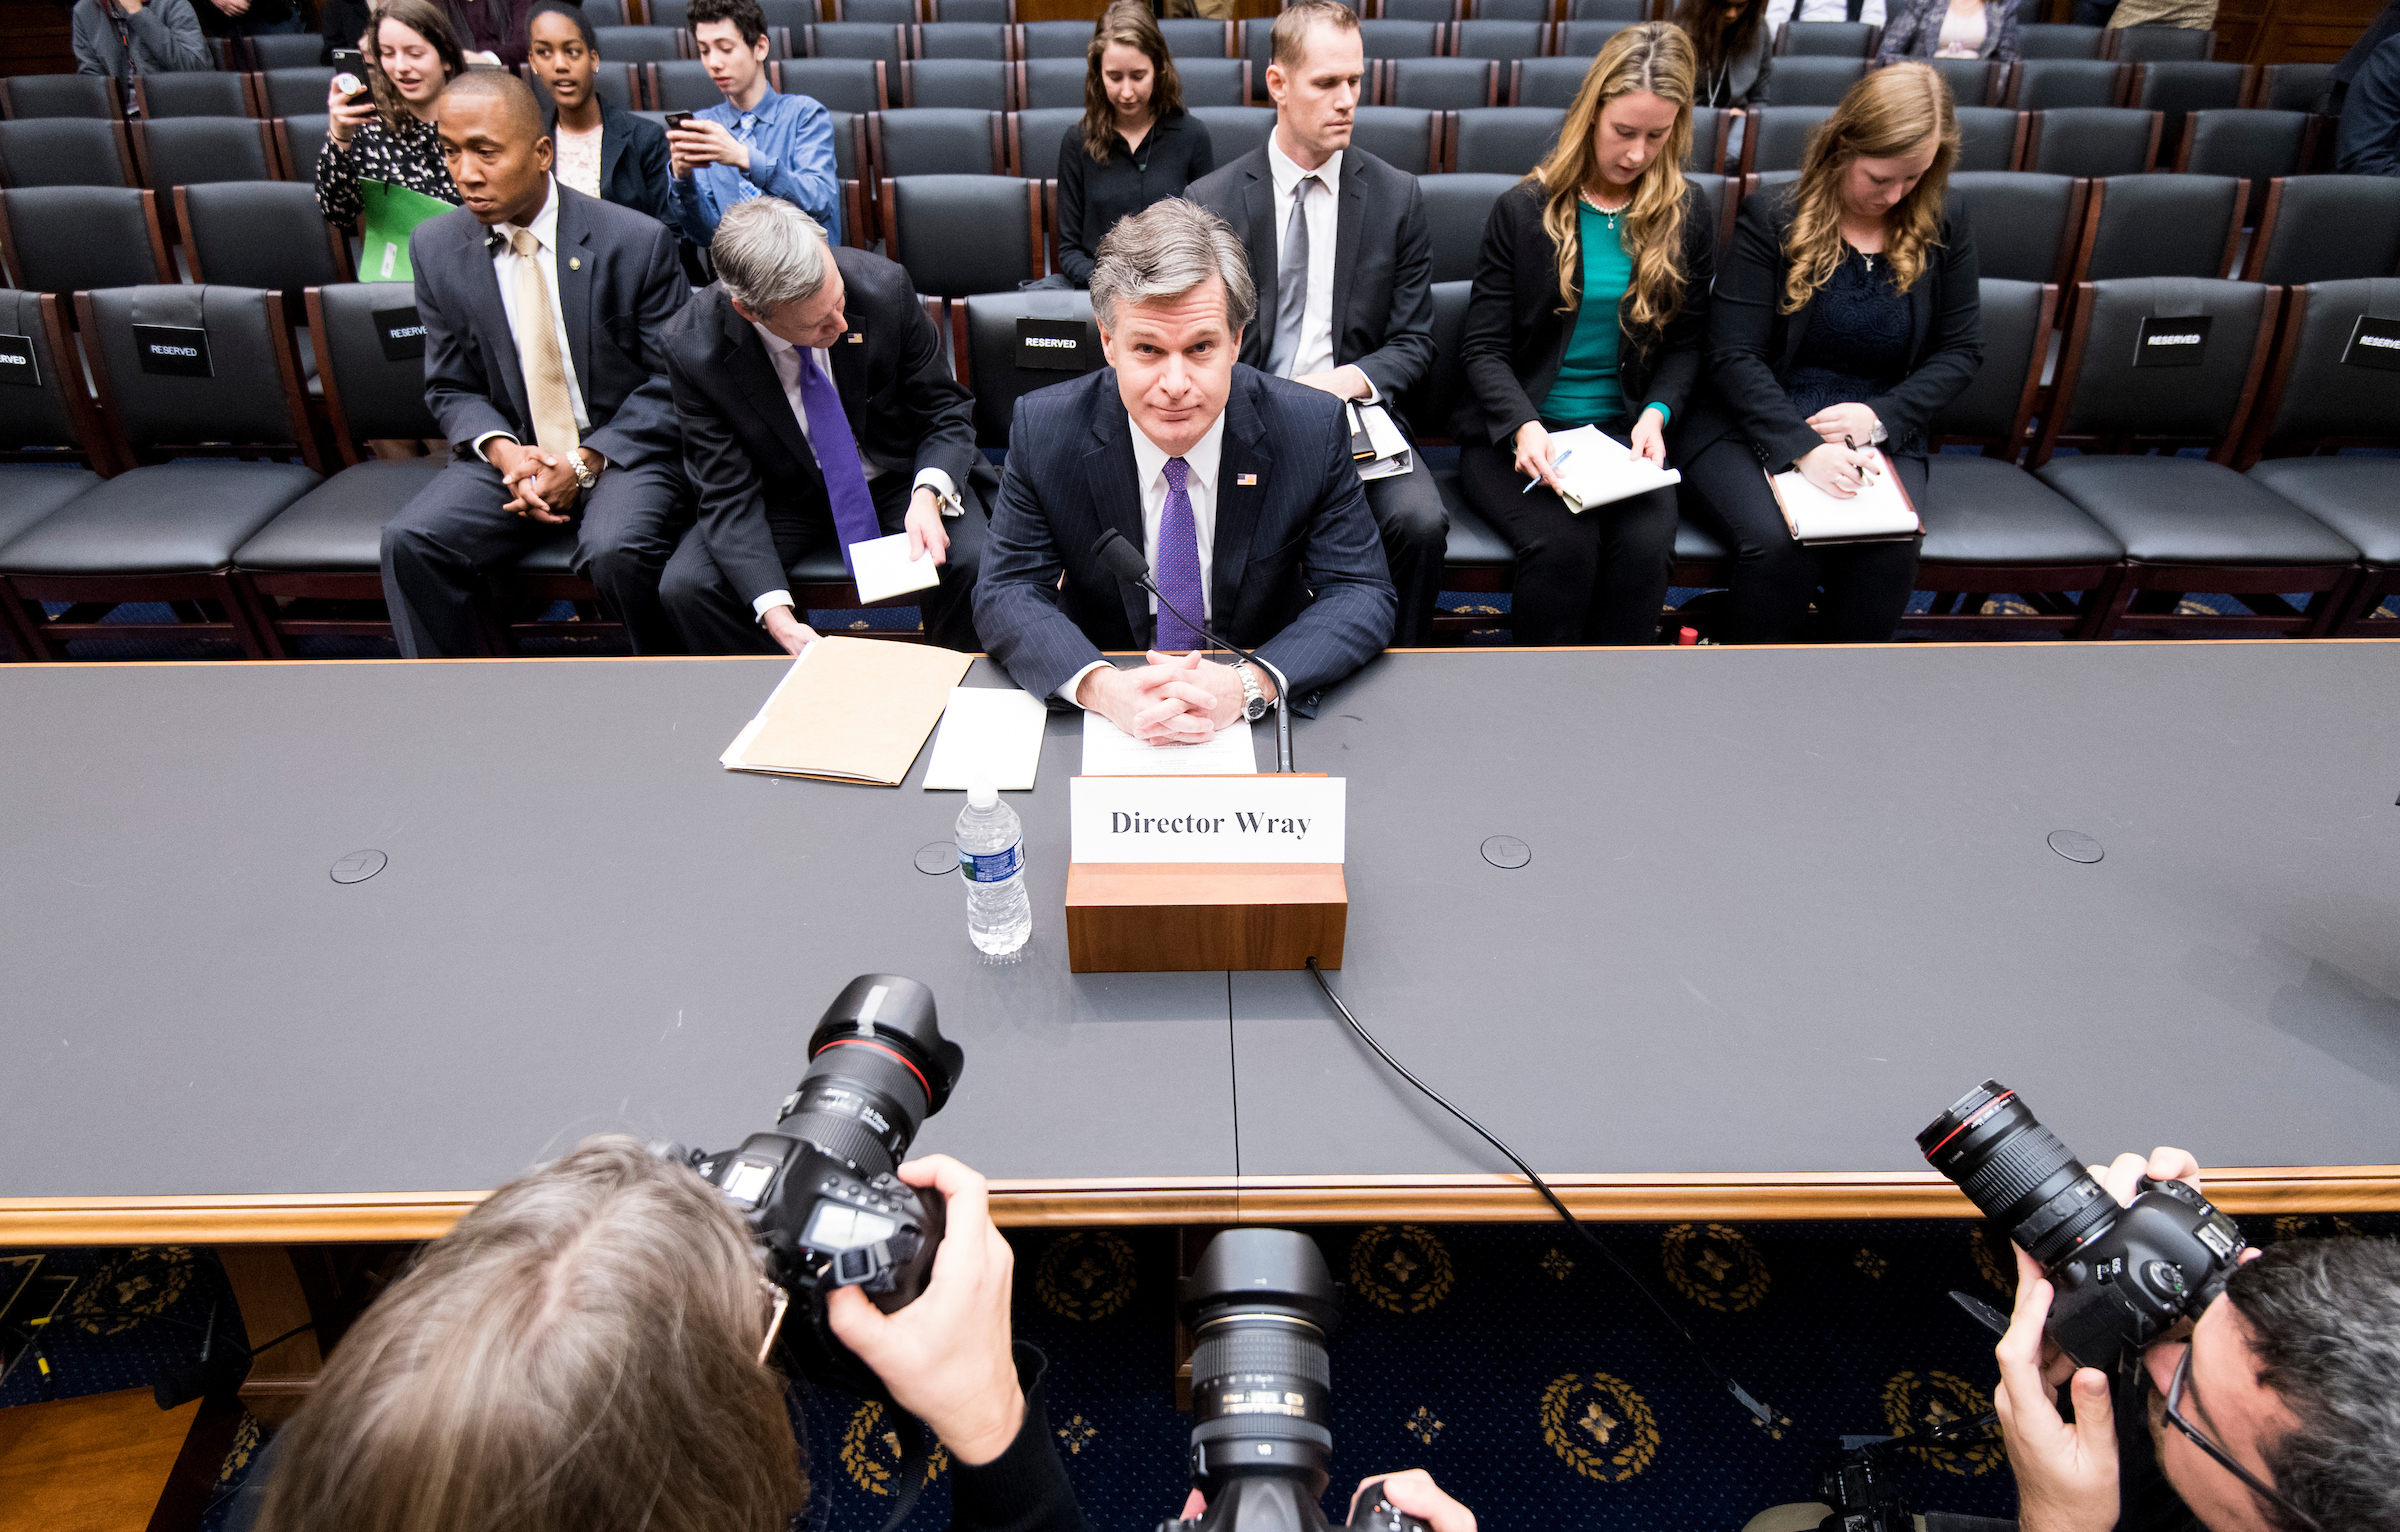 UNITED STATES - DECEMBER 7: FBI Director, Christopher Wray testifies during the House Judiciary Committee hearing on oversight of the Federal Bureau of Investigation on Thursday, Dec. 7, 2017. (Photo By Bill Clark/CQ Roll Call)